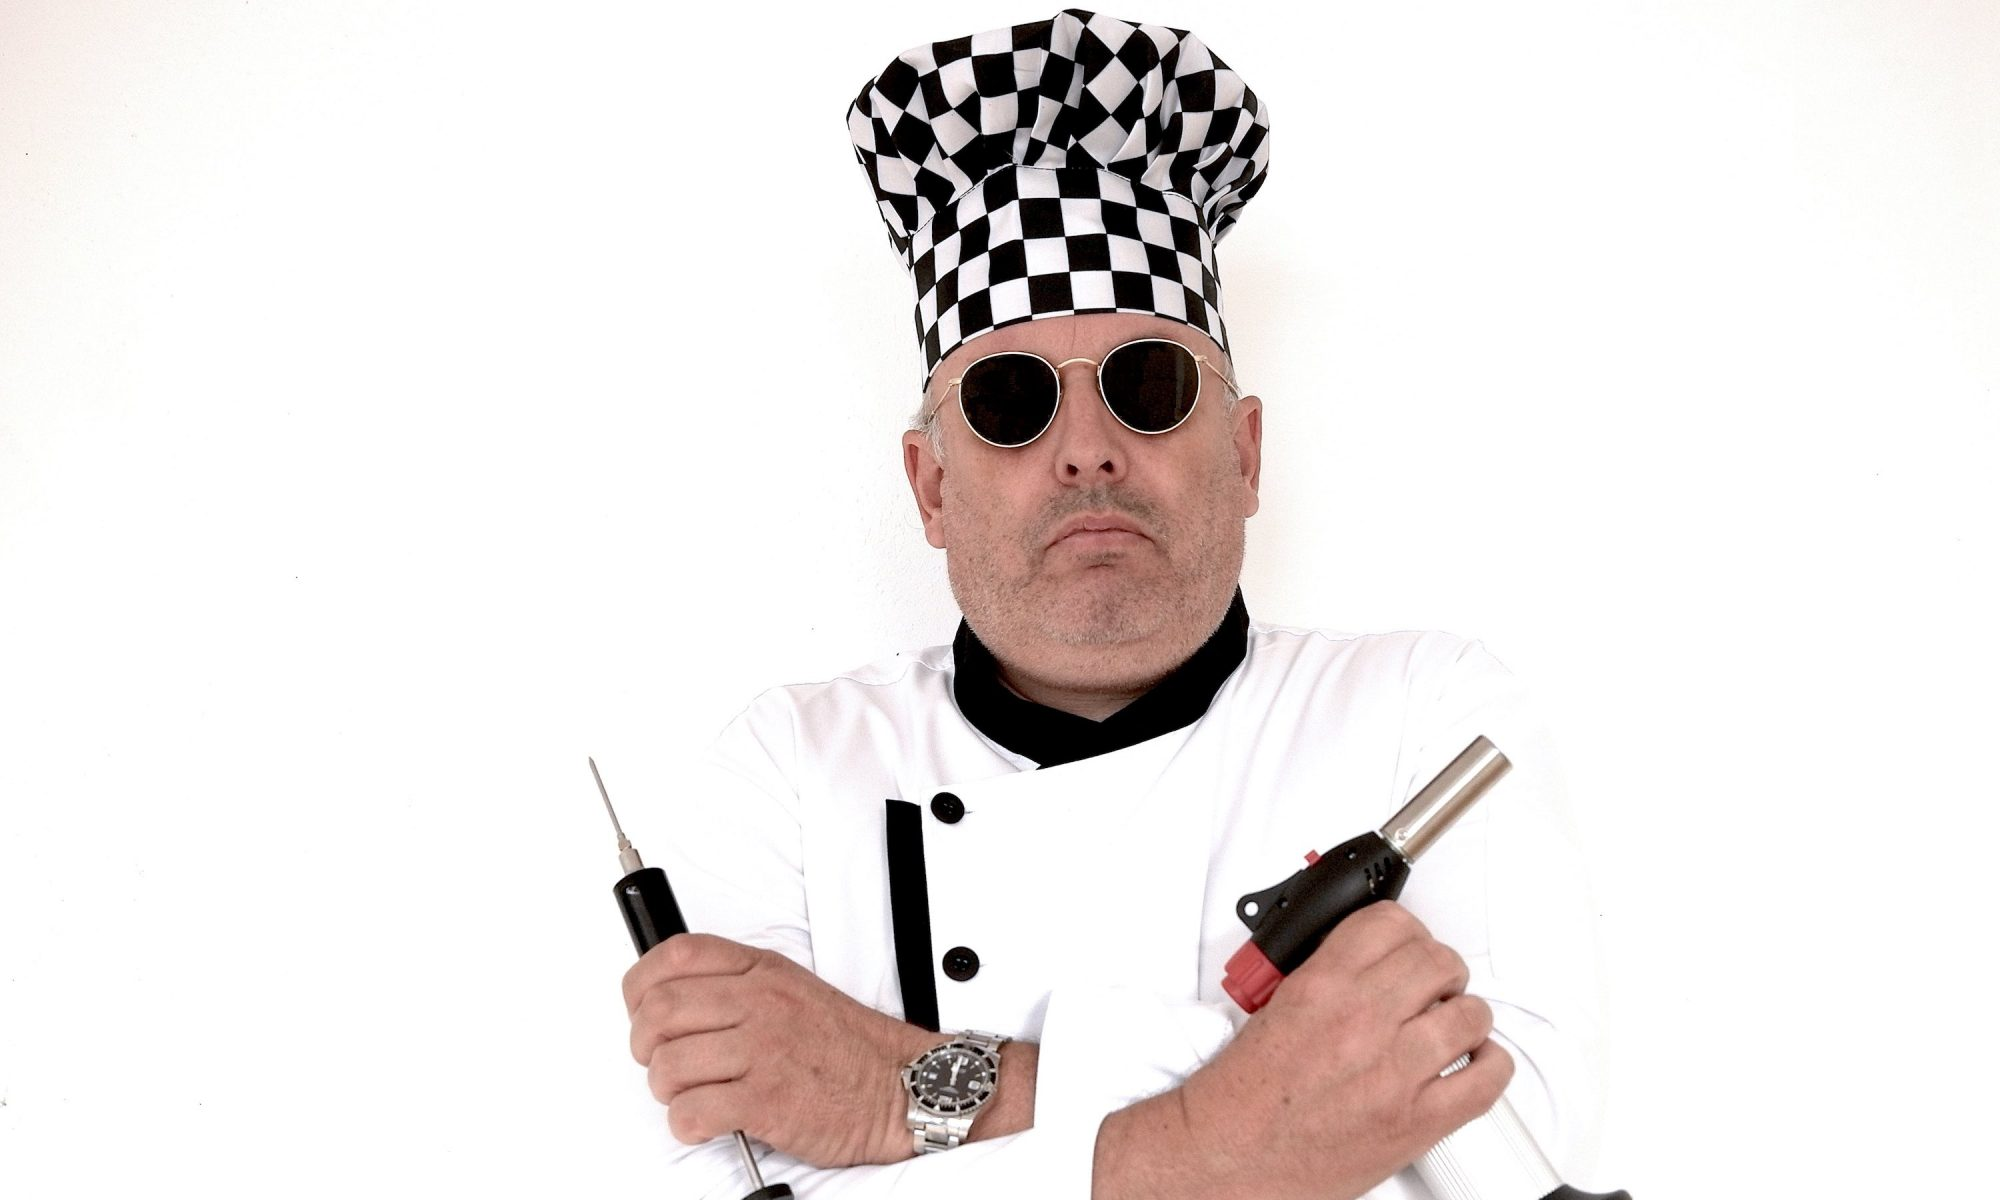 The Mad Chef